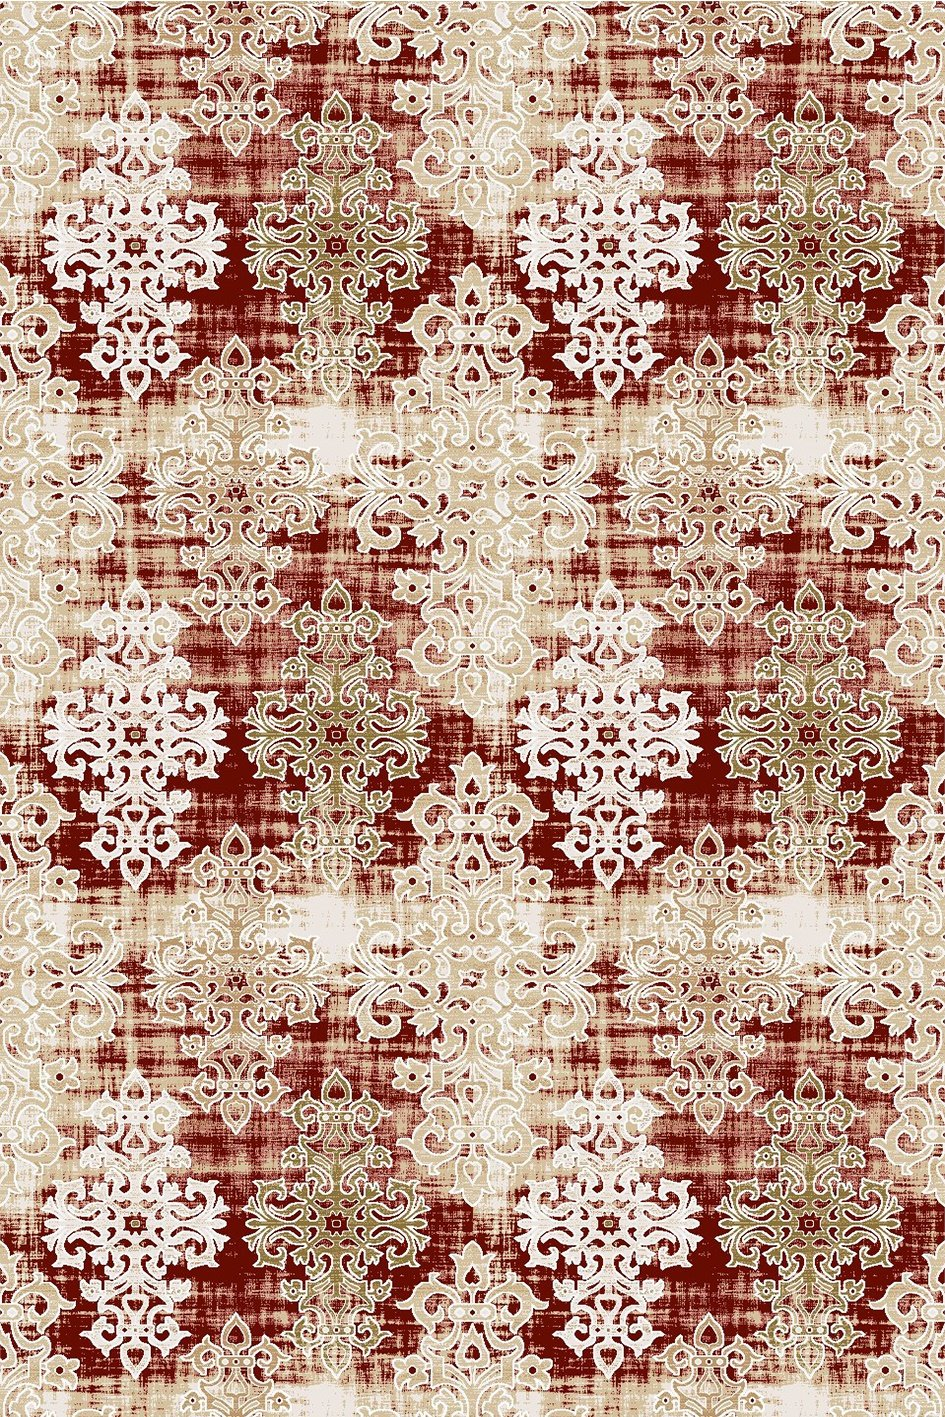 Maxmar Carpet Selimiye Series Red Decorative Area Rug 3019